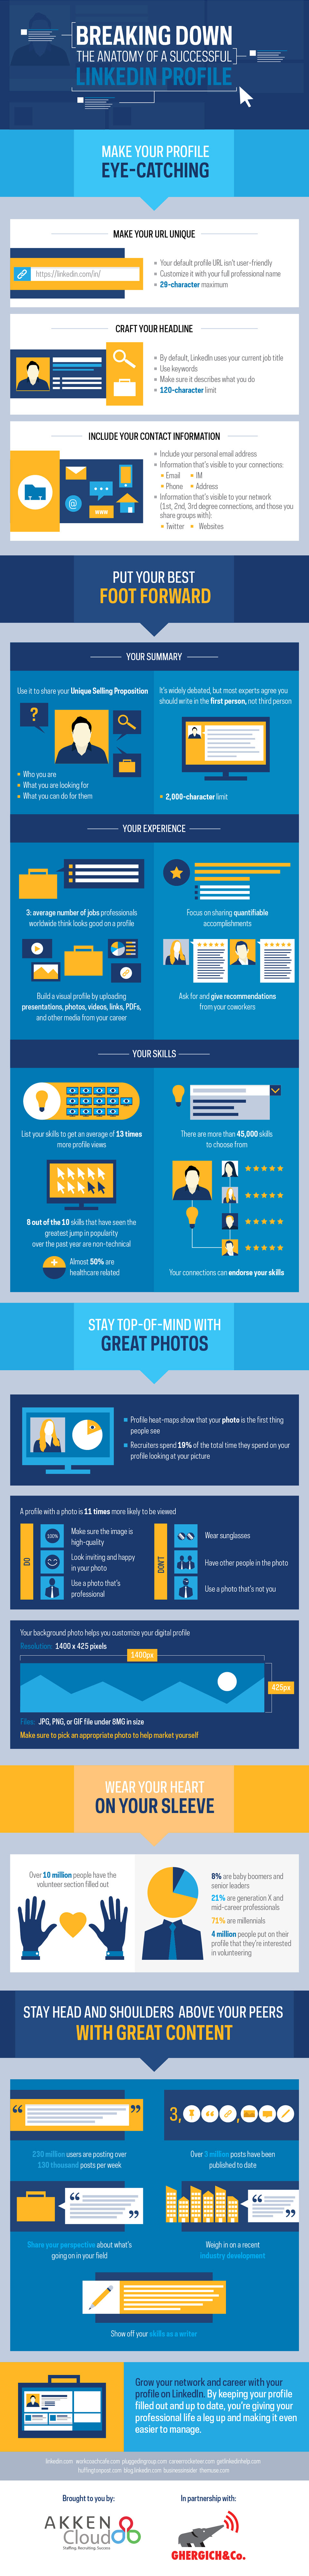 Breaking Down the Anatomy of a Successful LinkedIn Profile [INFOGRAPHIC]